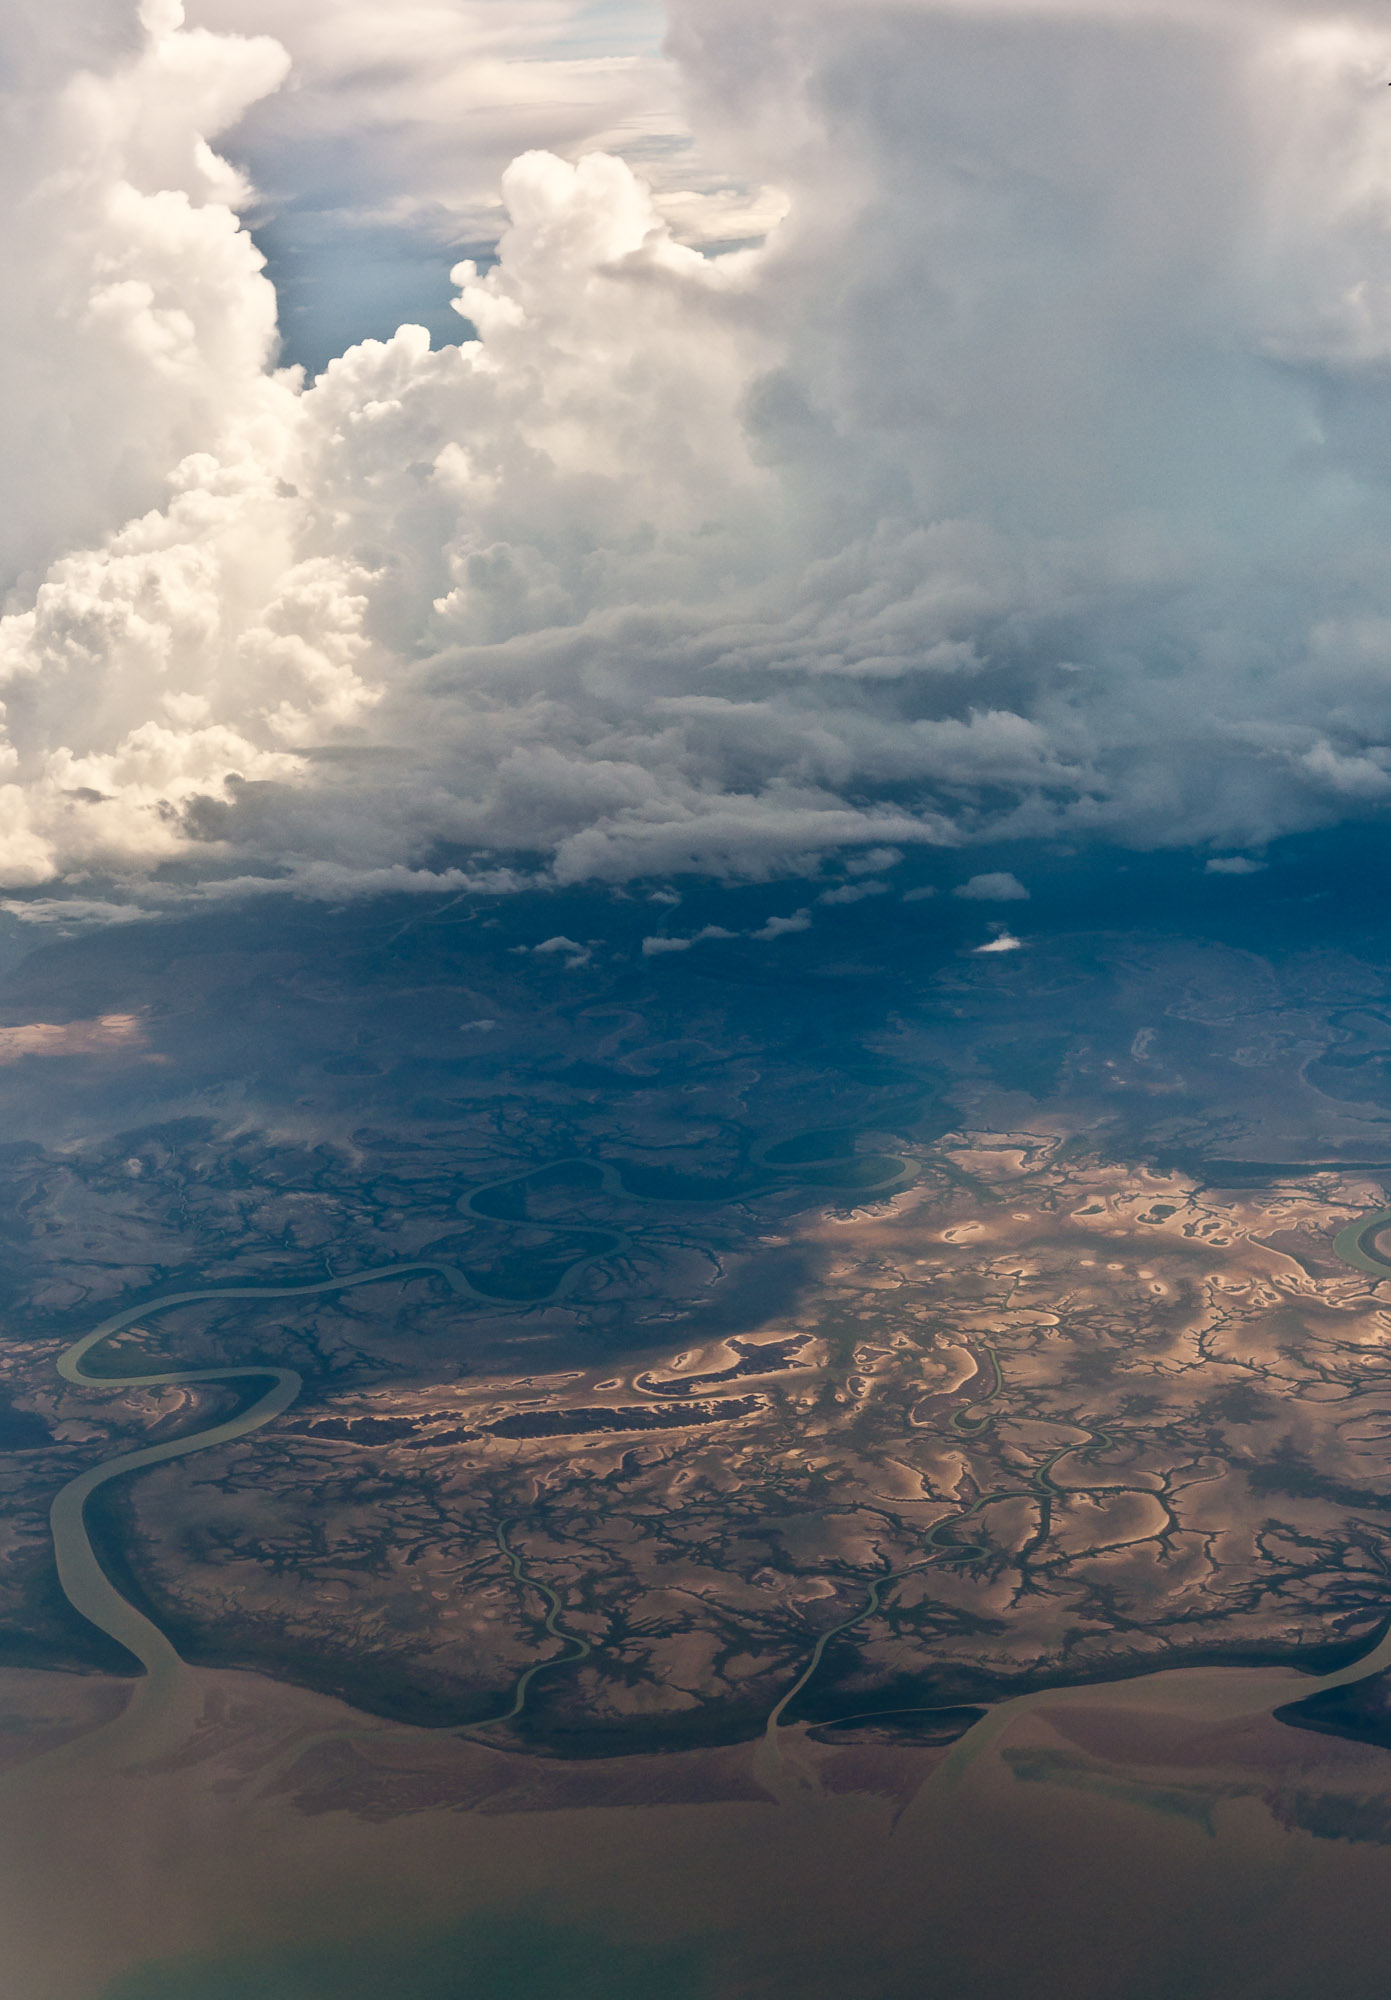 Monsoonal storm clouds over coast near Kakadu National Park, Australia